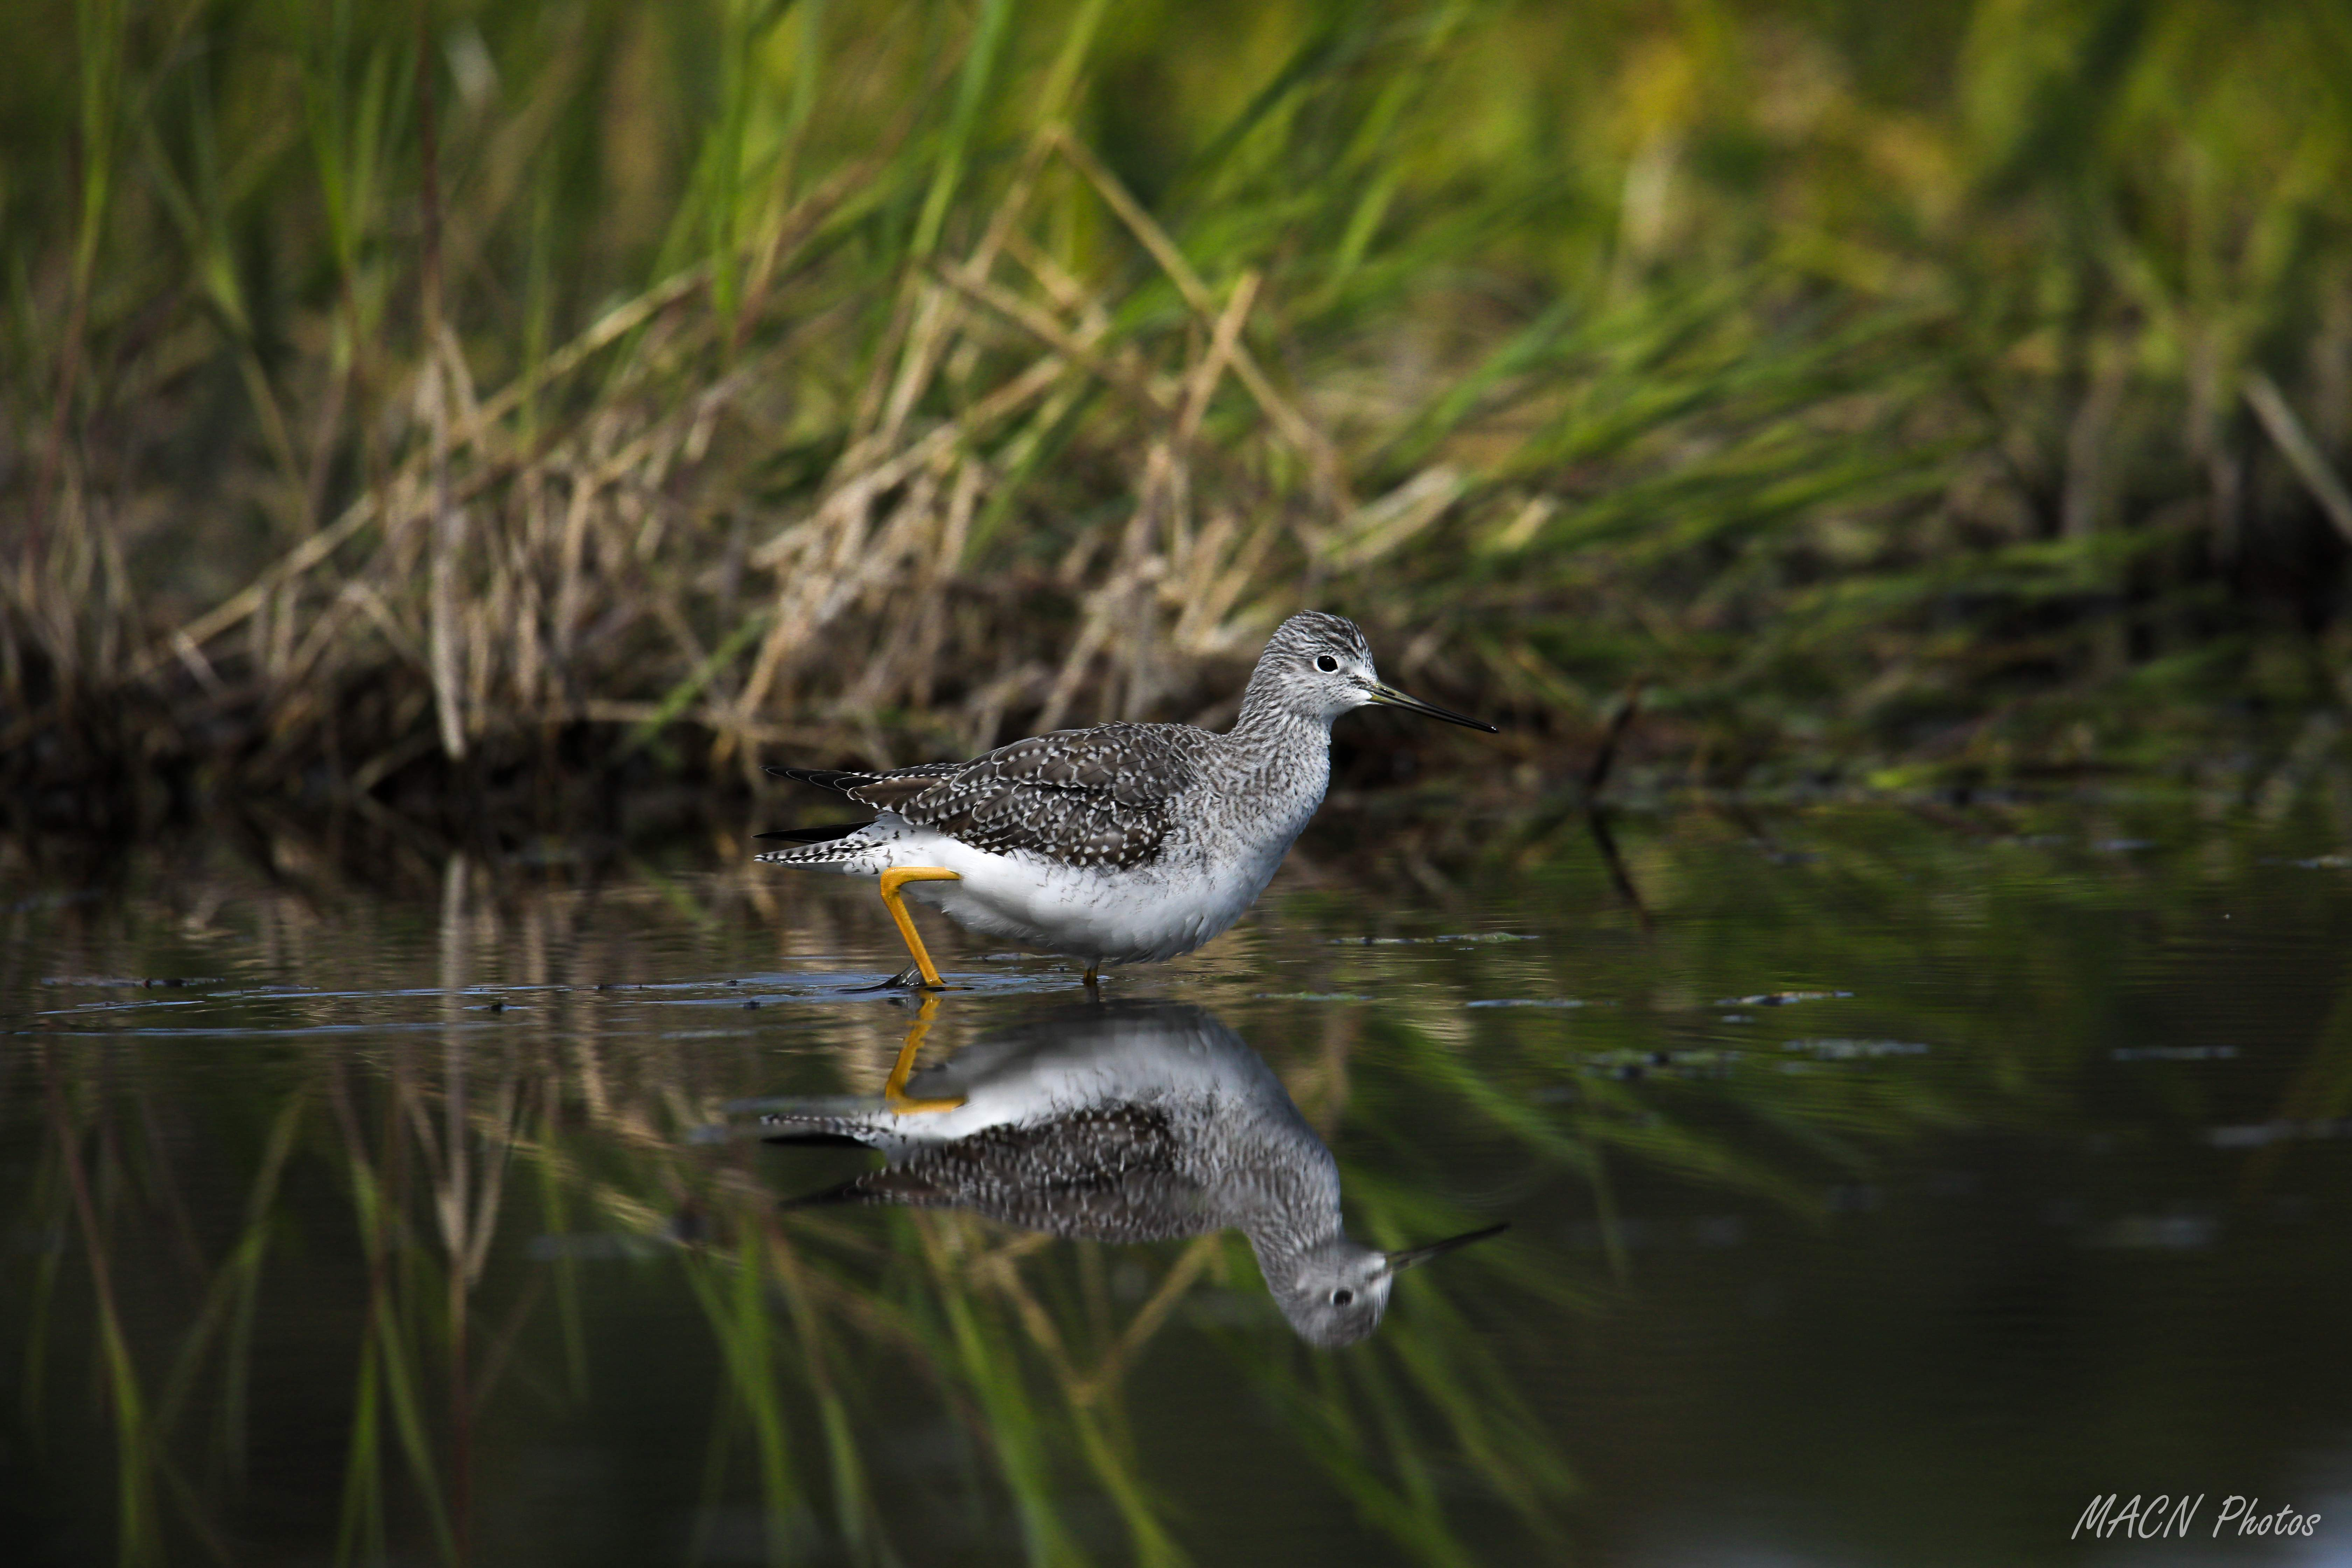 Third Place: Allen Smith of Medford took this photo of a yellowlegs wading in the shallows near Klamath Falls. - Photo by Allen Smith